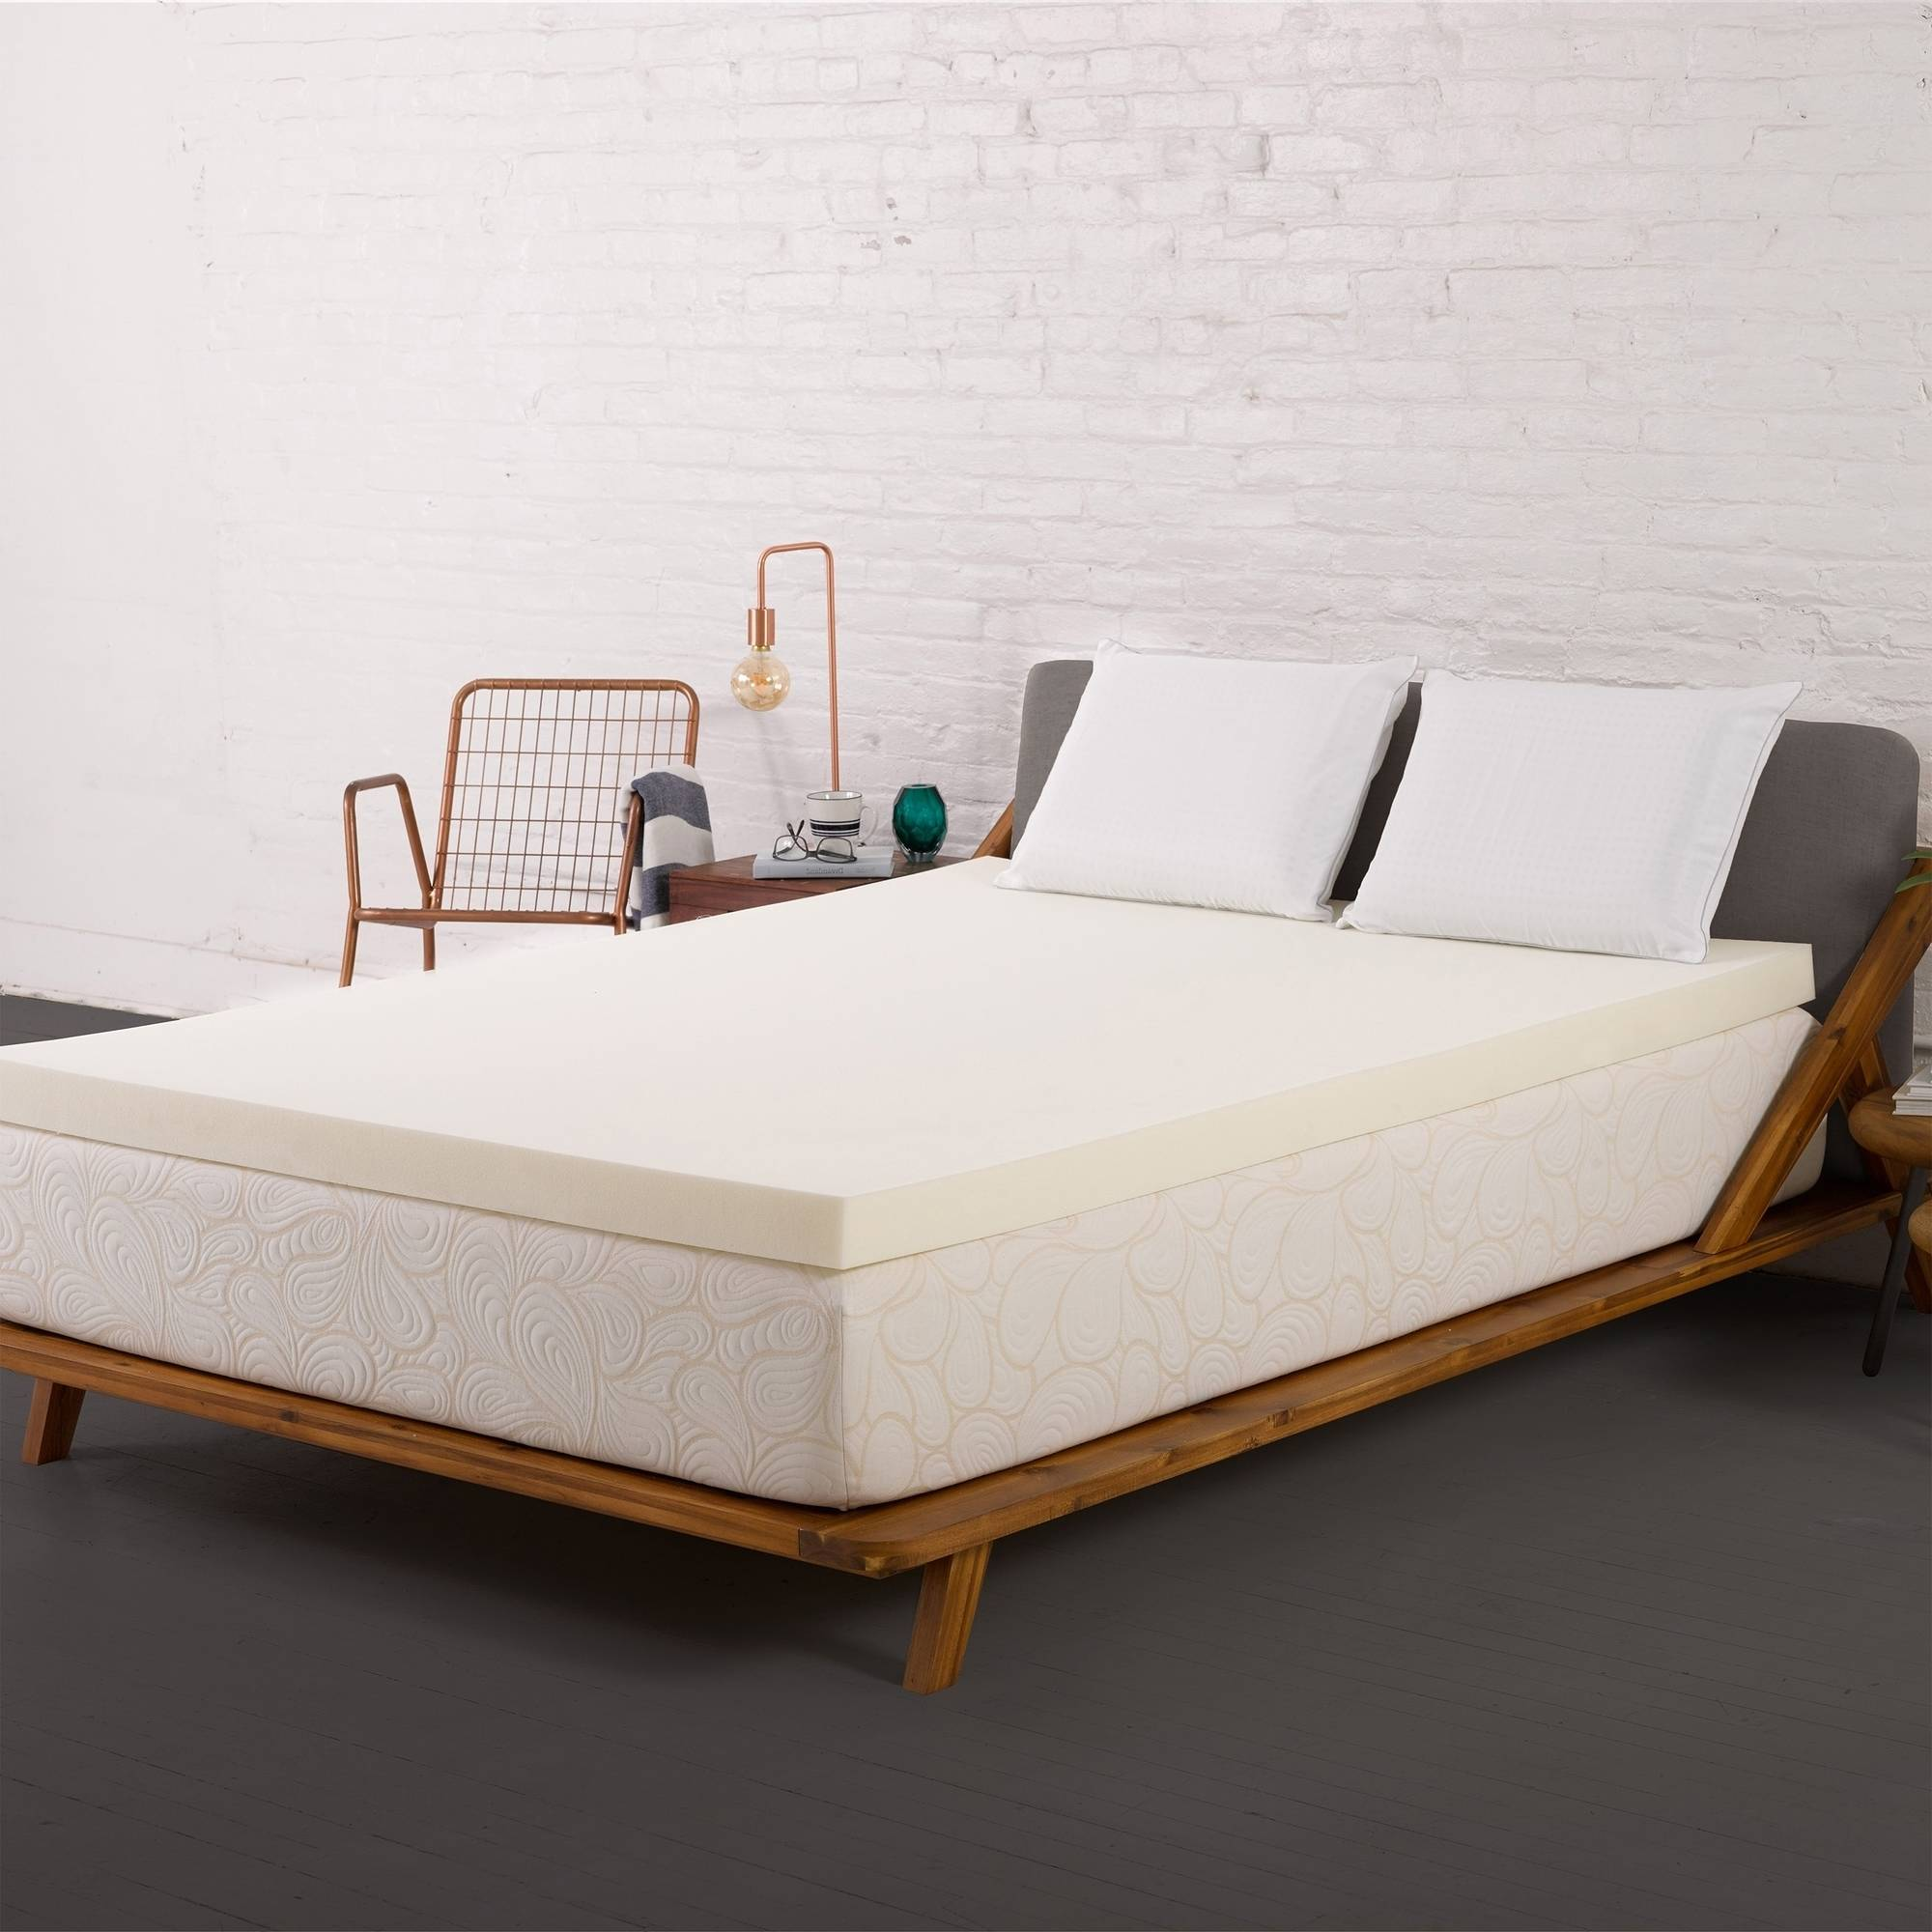 inch in comfort sizes the multiple foam eco size of suitable gel topper memory walmart at excellent com amazing full temp great uk mattr costco broyhill repose by mattress store brilliant